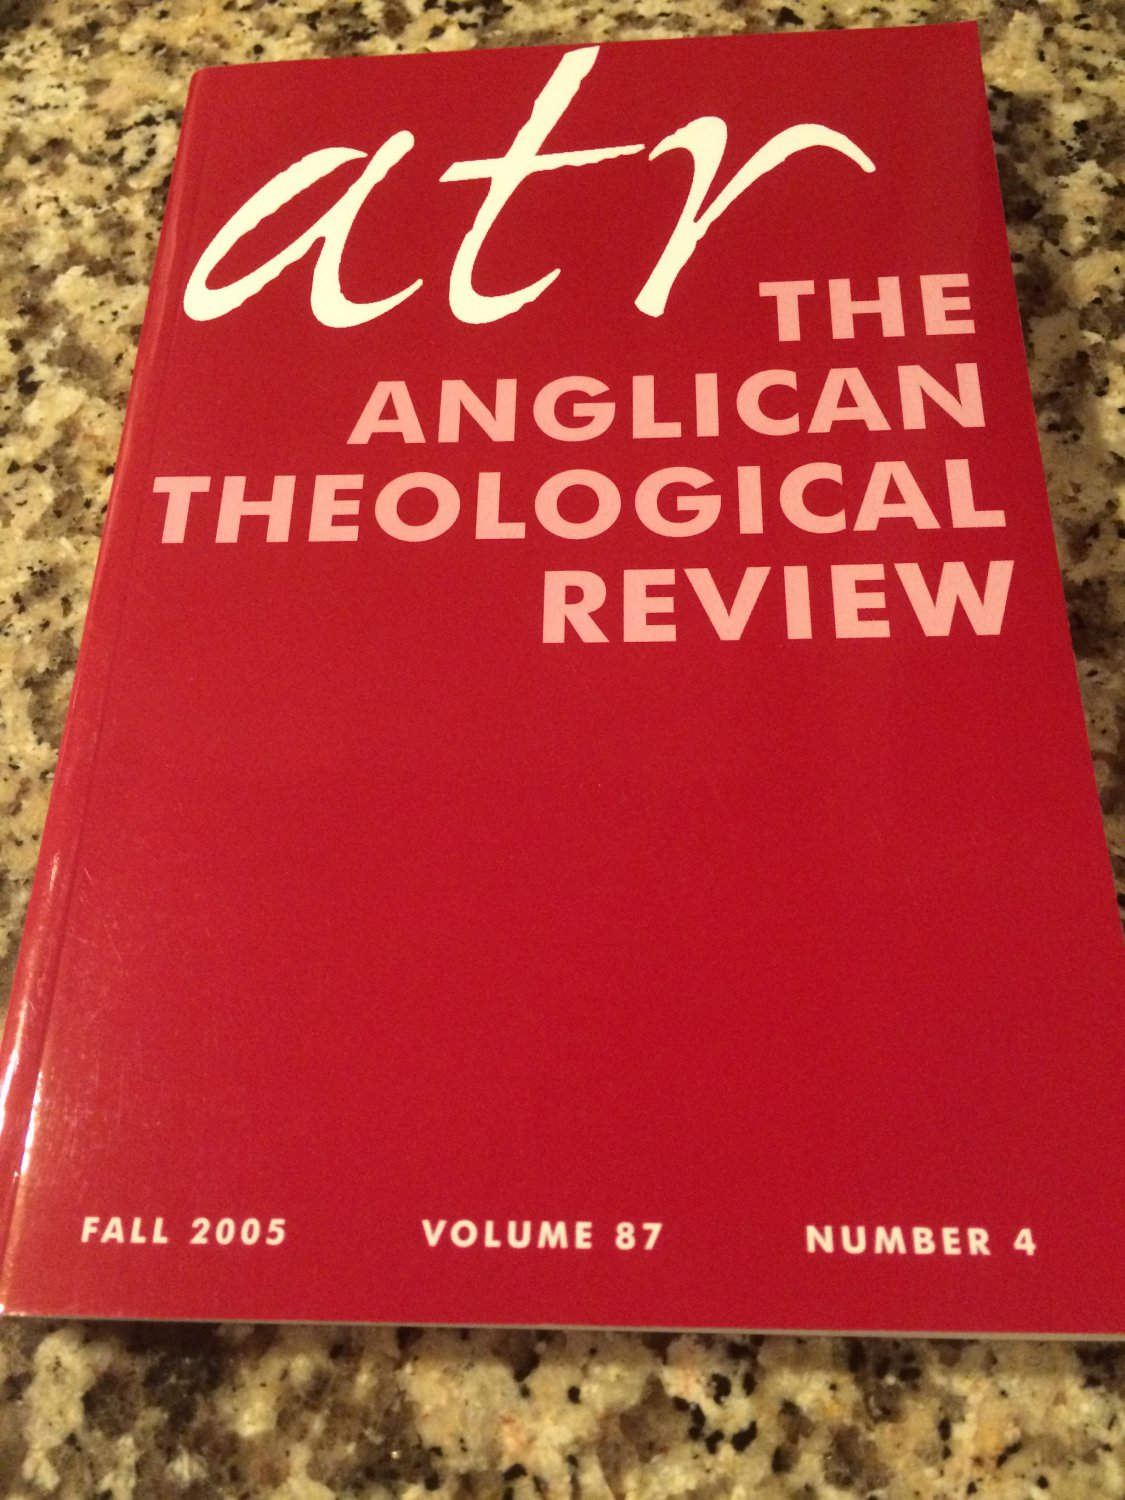 ATR The Anglican Theological Review Fall 2005 Volume 87 Number 4 by P. Marshall & G. Sumner